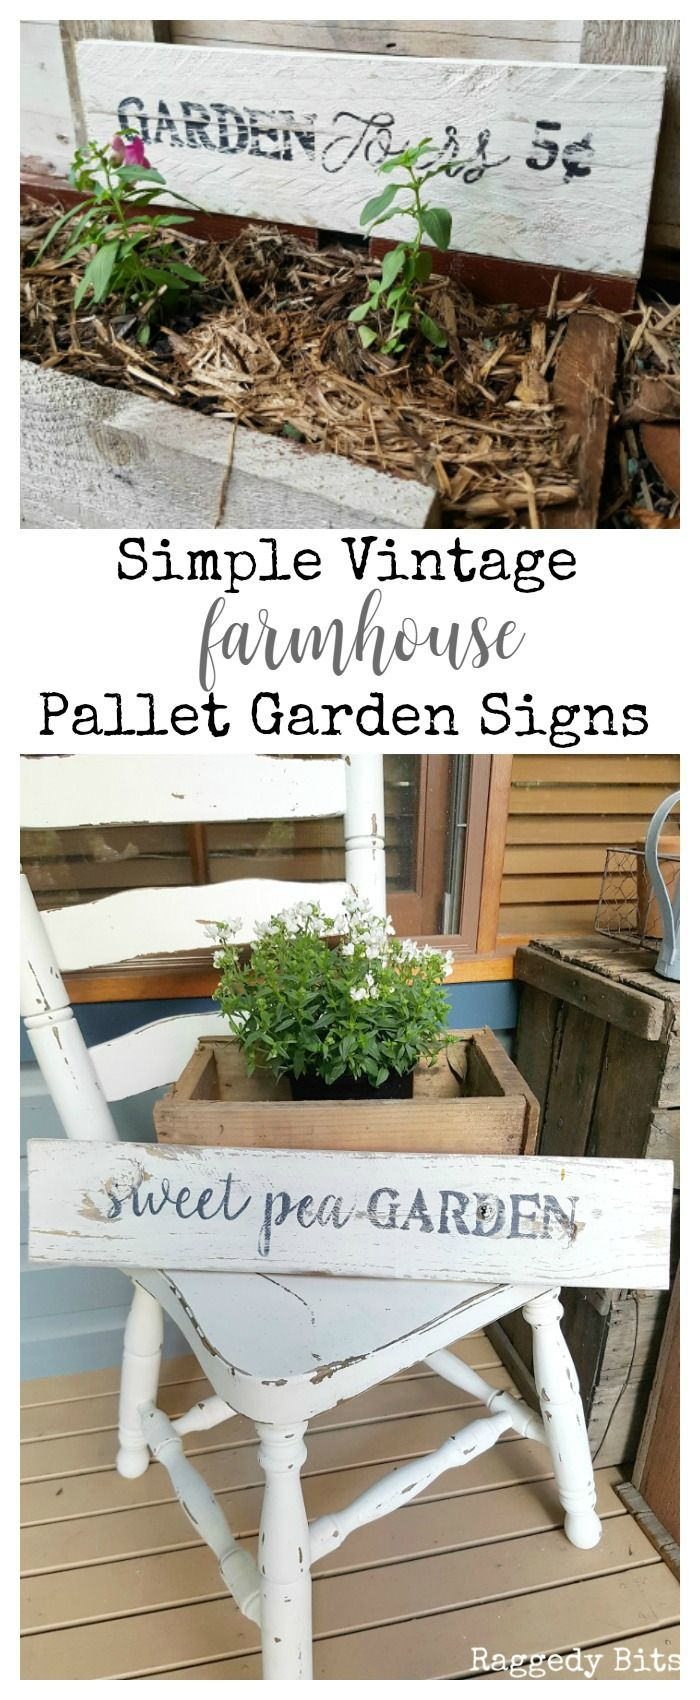 Waste Not Wednesday-50 Raggedy Bits Projects for the week   Simple Vintage Farmhouse Pallet Garden Signs   www.raggedy-bits.com